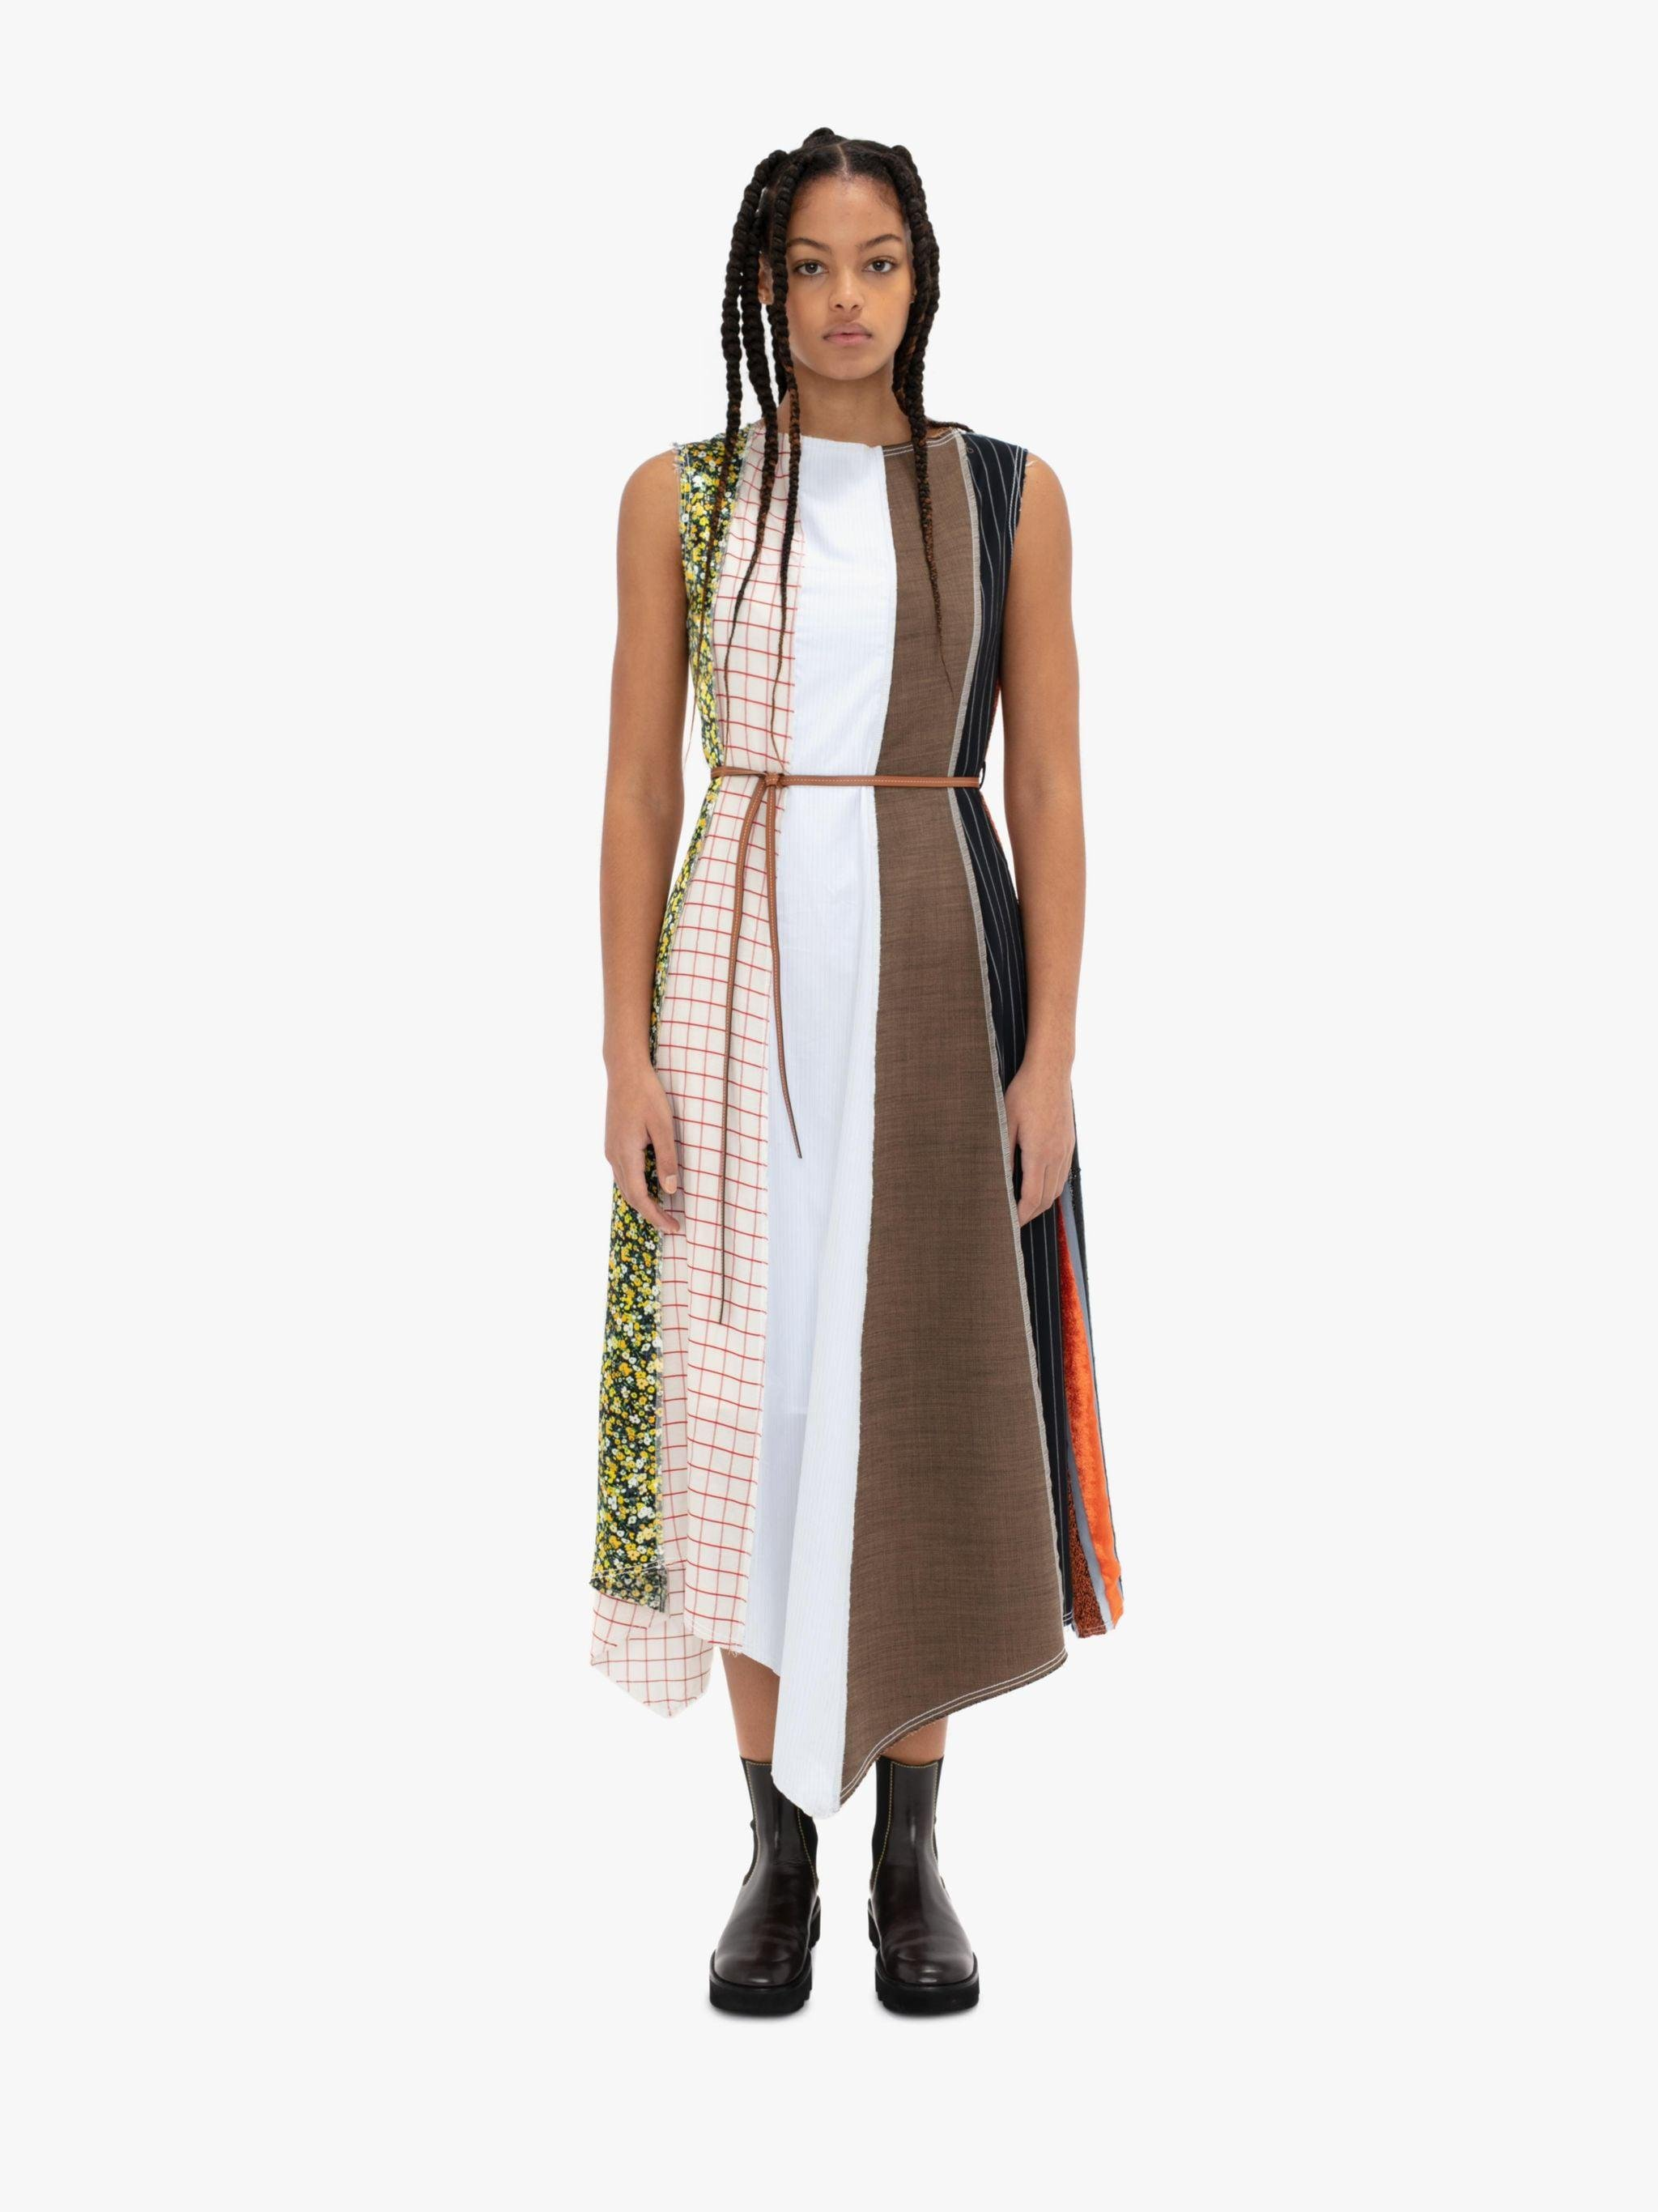 MADE IN BRITAIN: PANEL DRESS